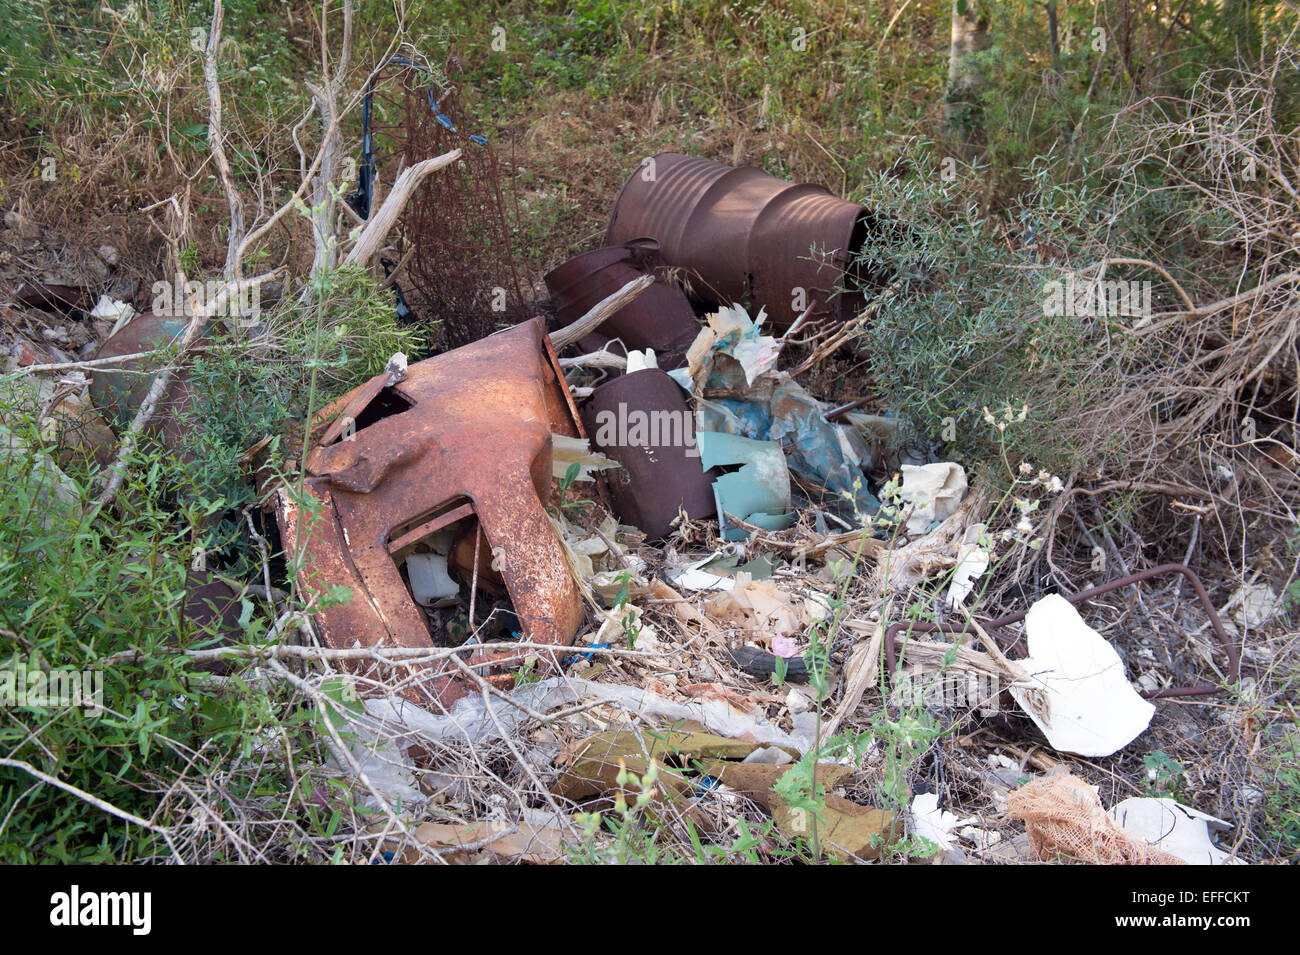 Dumping ground with metal barrels and other garbage - Stock Image